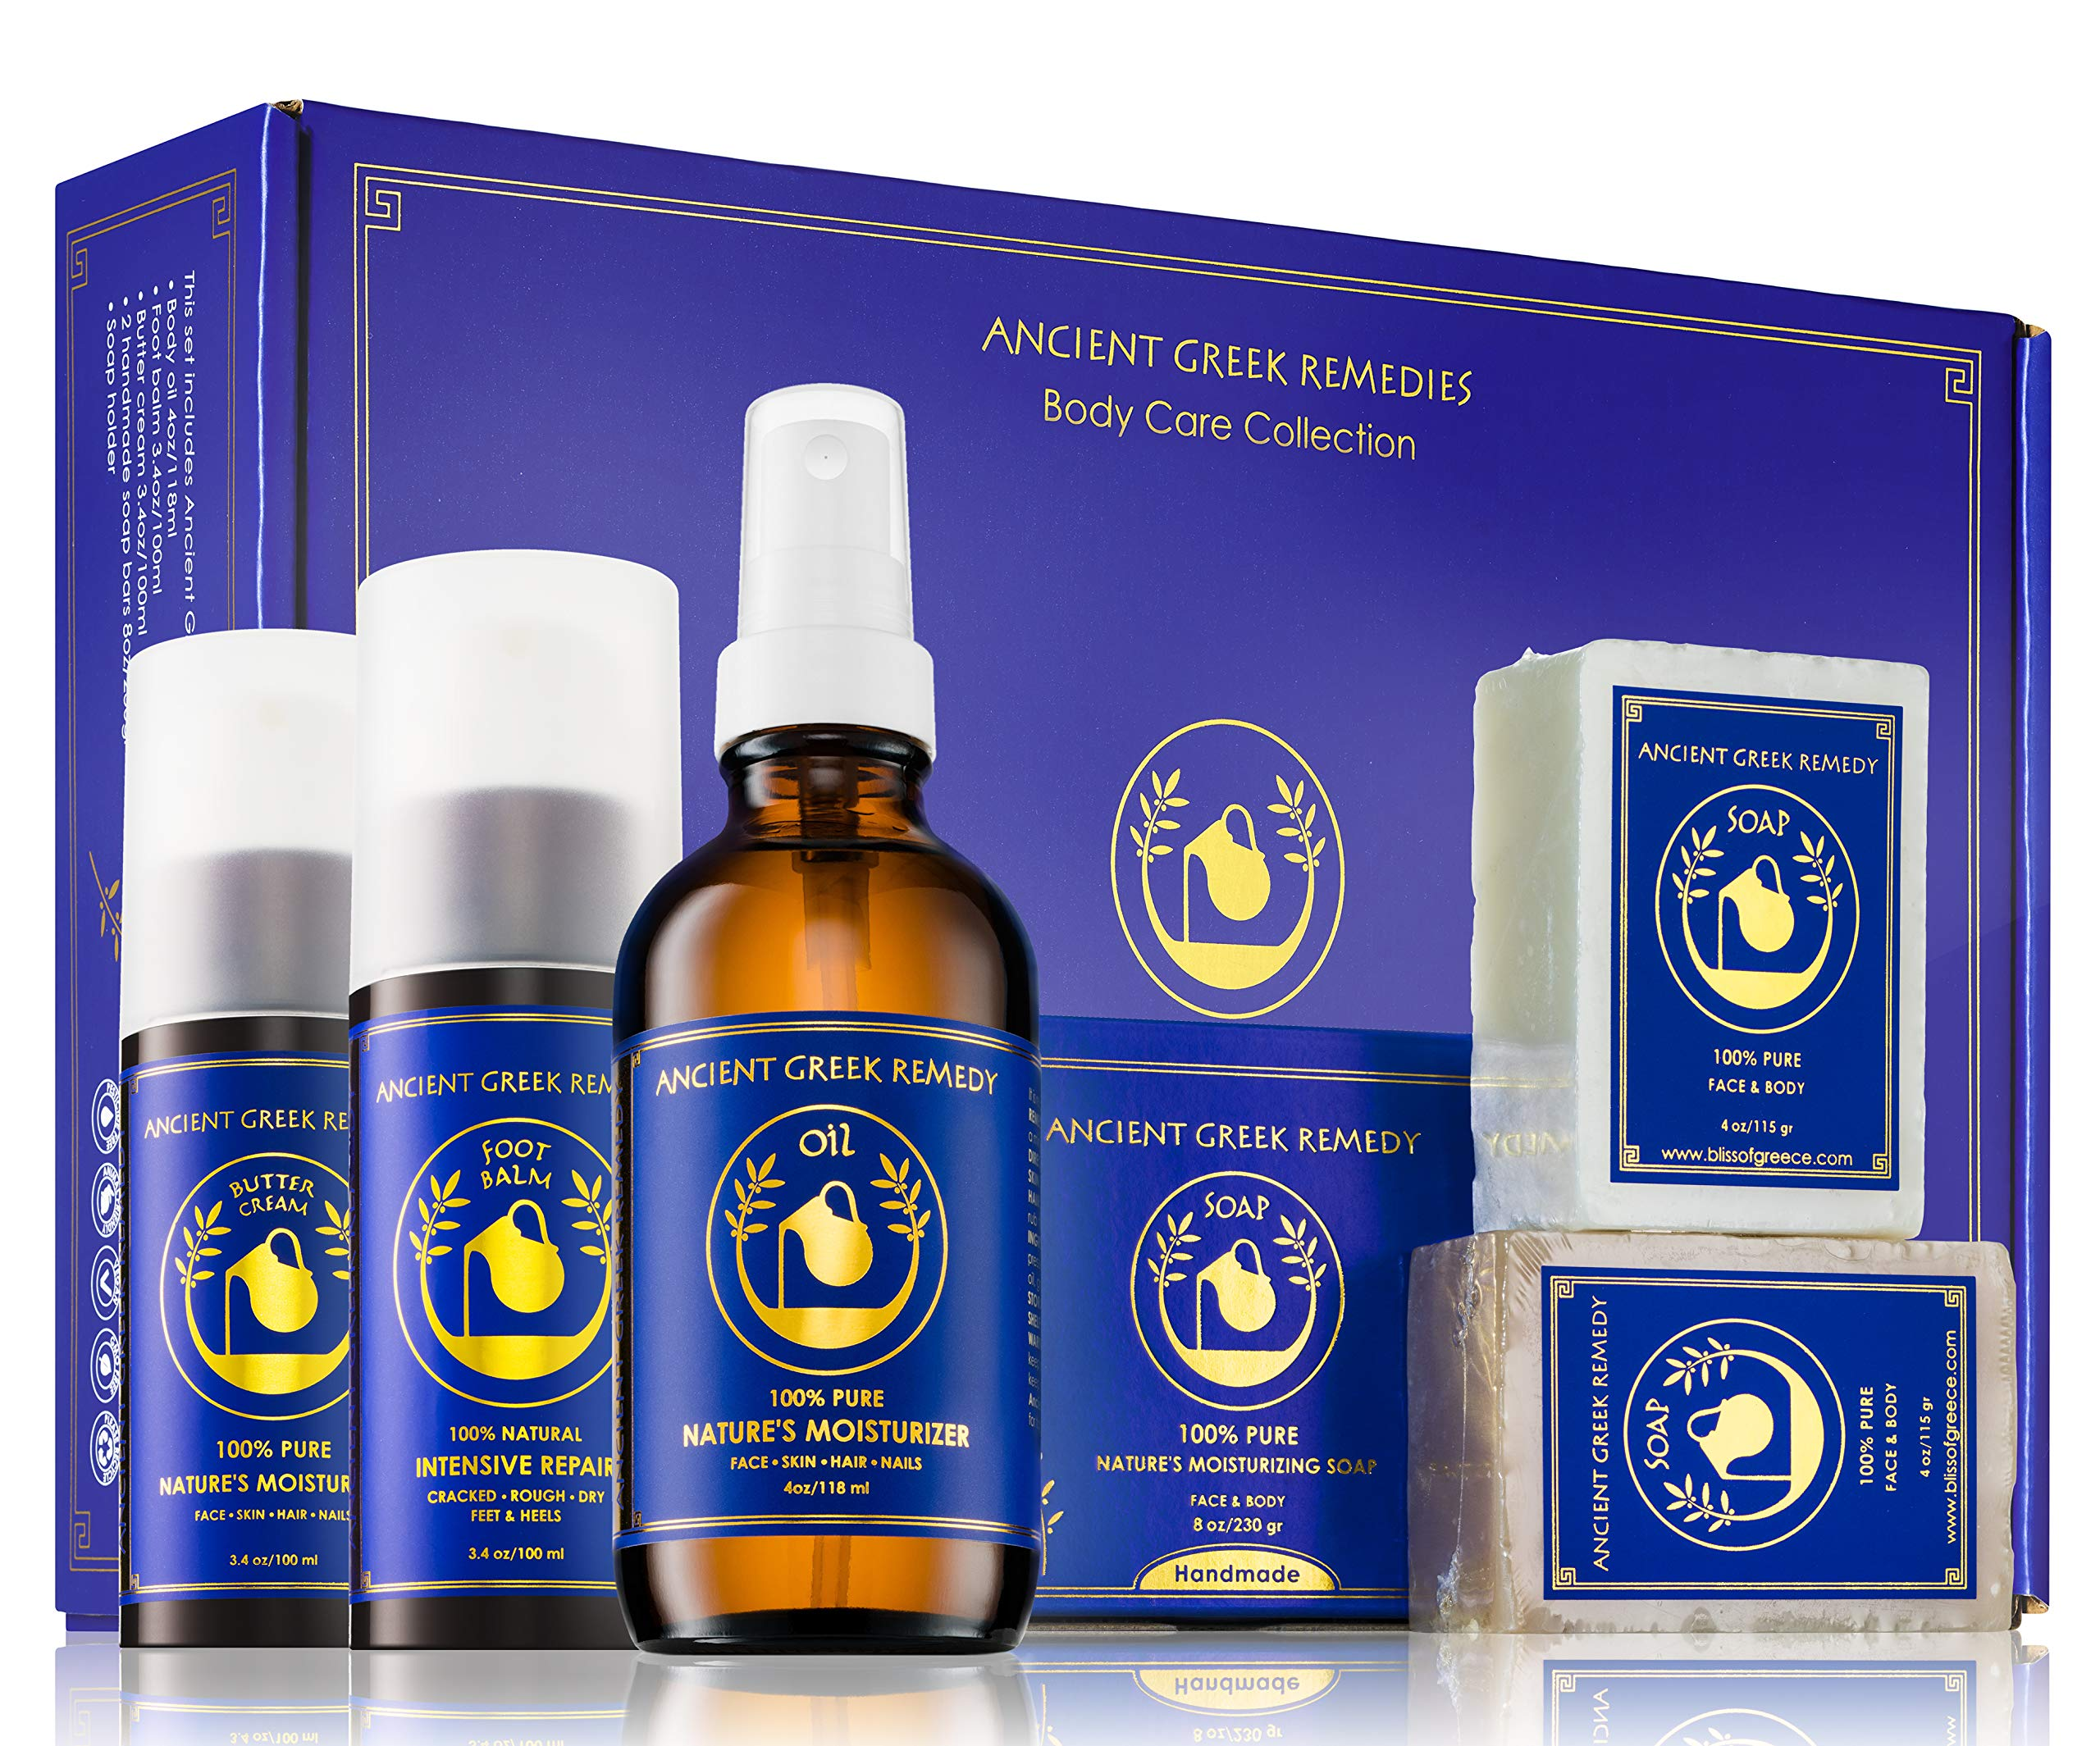 Ancient Greek Remedy Organic Spa Skin Care Gift Set, Perfect for Moms, Pregnancy, Daily Bath and Shower, Face and Body Care, and Post Cancer, Chemo Rejuvenation by Ancient Greek Remedy